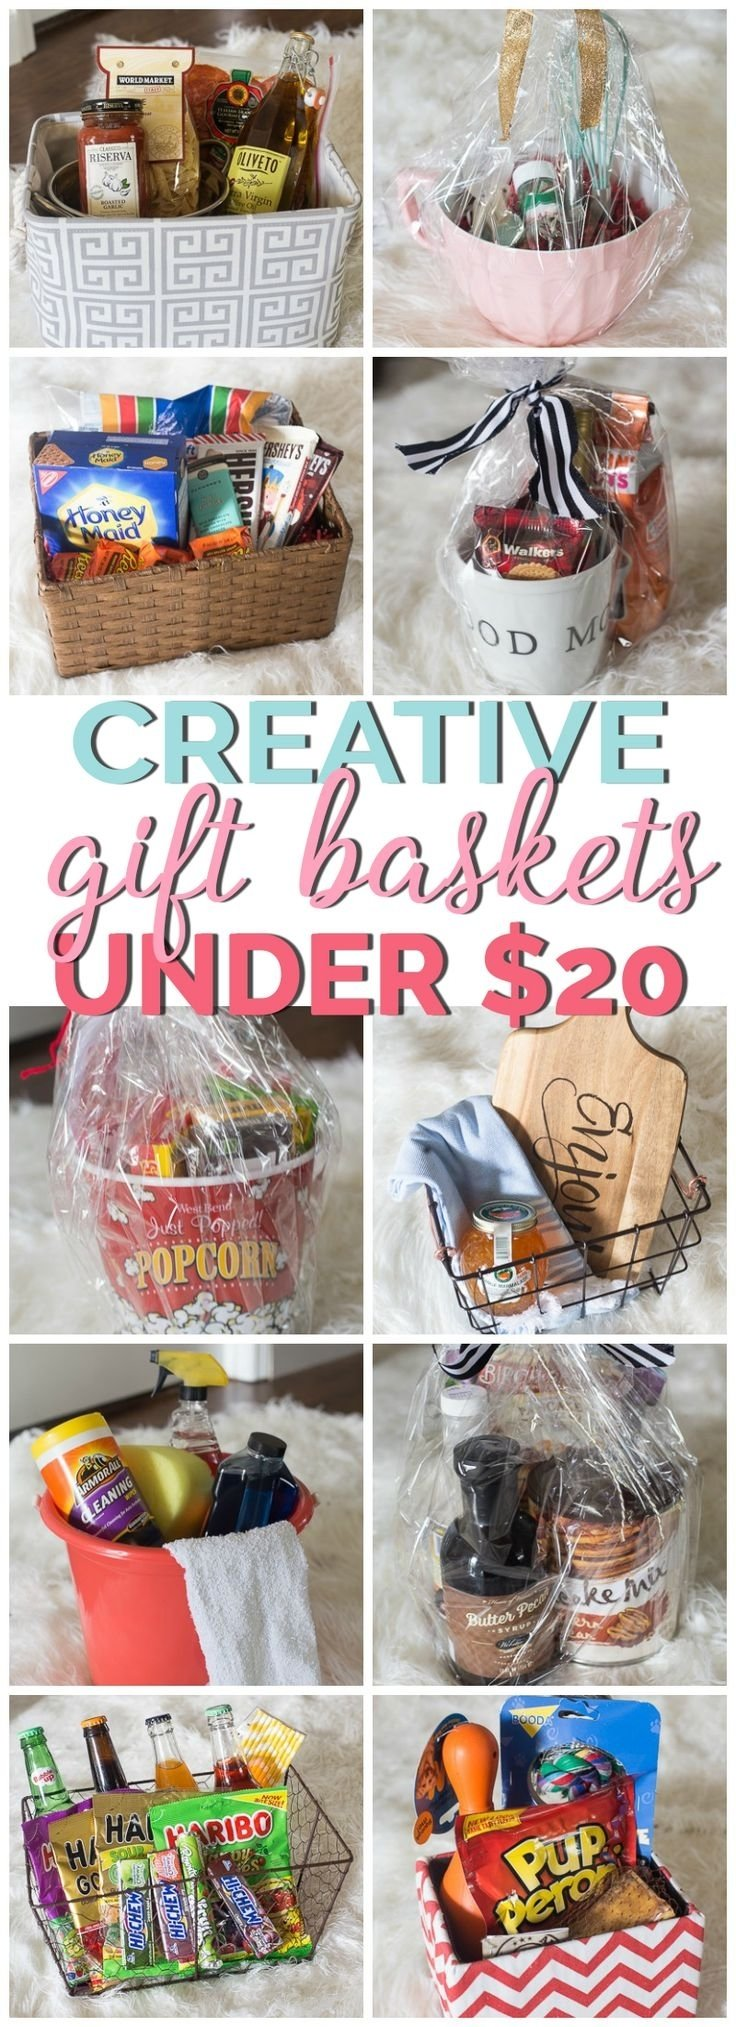 10 Unique Christmas Gift Ideas On Pinterest basket cheap baskets for gifts 25 best gift ideas on pinterest 2020